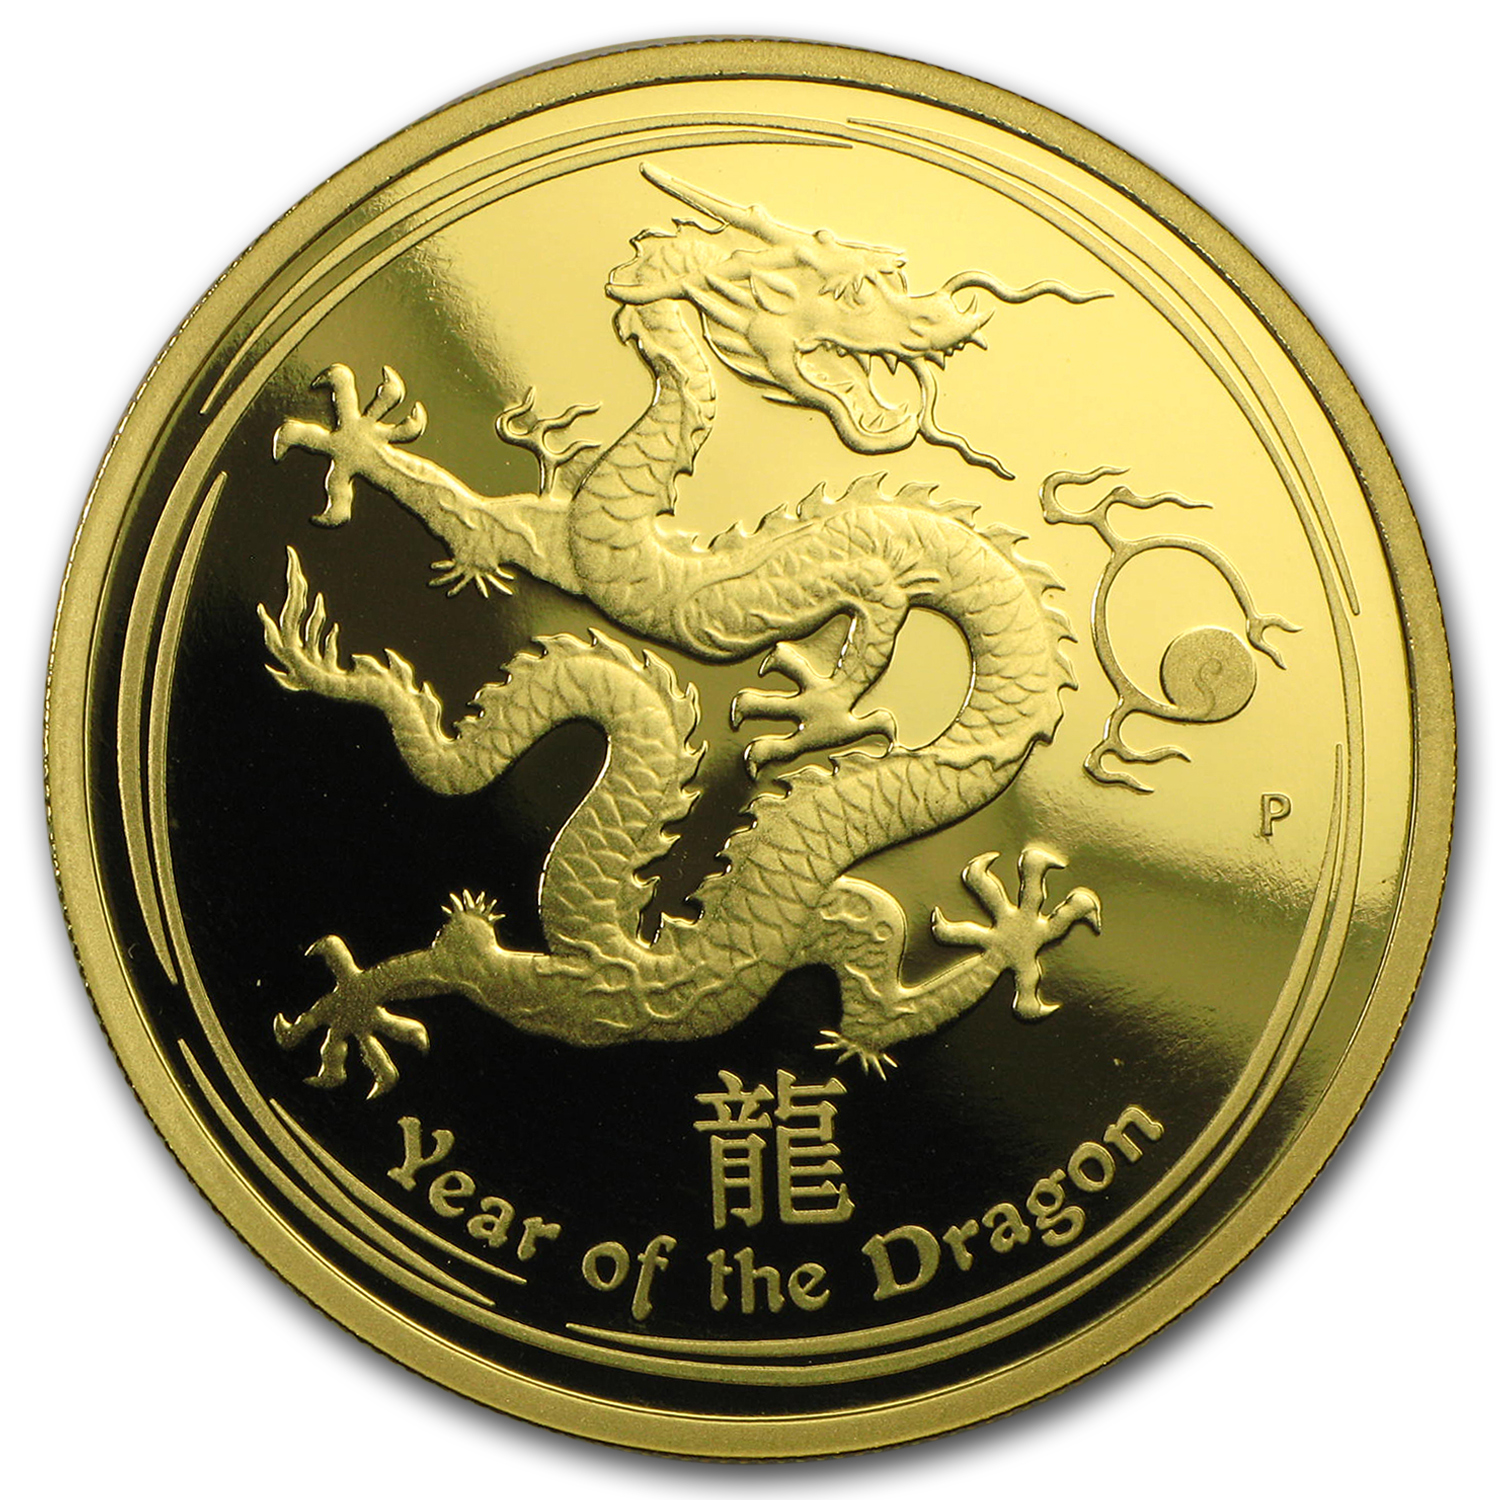 2012 1 oz Gold Lunar Year of the Dragon Proof (Series II)